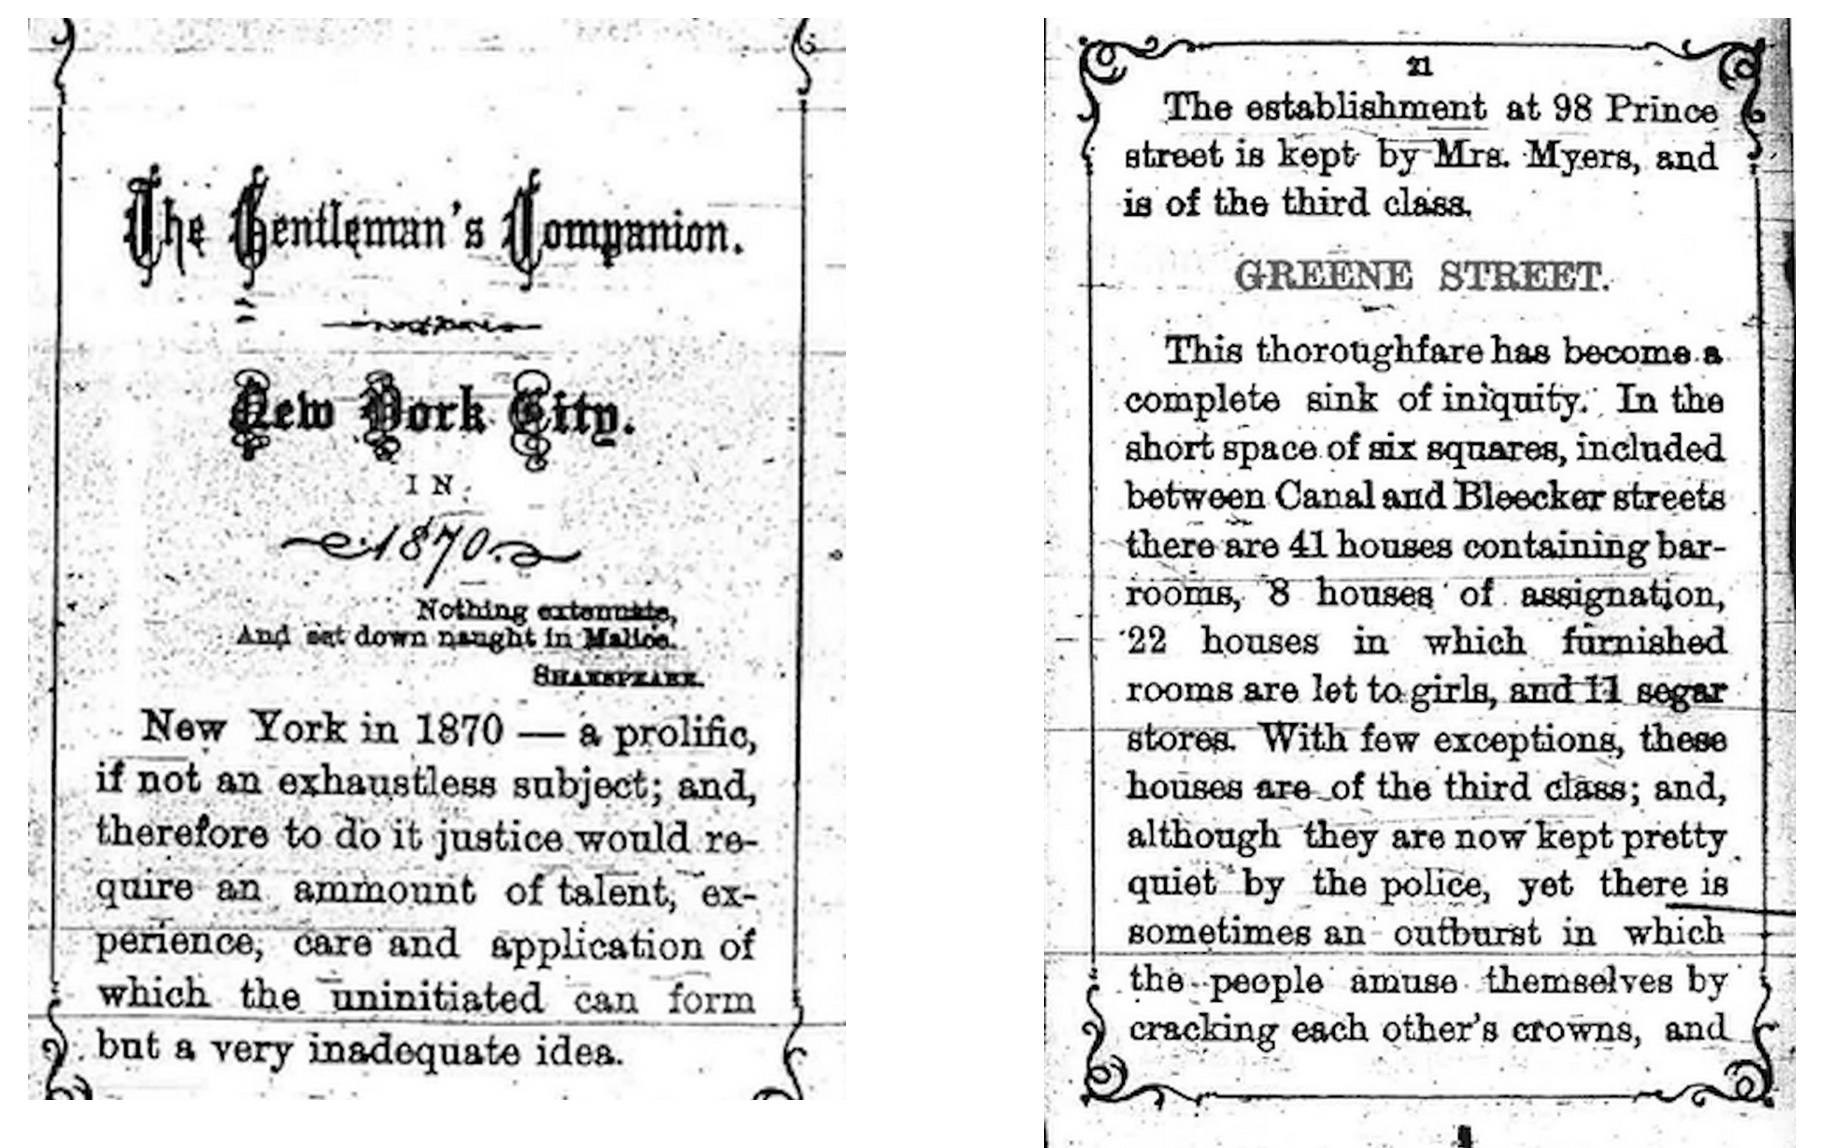 """The Gentleman's Companion: a pocket guidebook to nightlife in New York in 1870. Greene Street had so many brothels that the area was described as a """"sink of iniquity."""" Found in New York Times."""